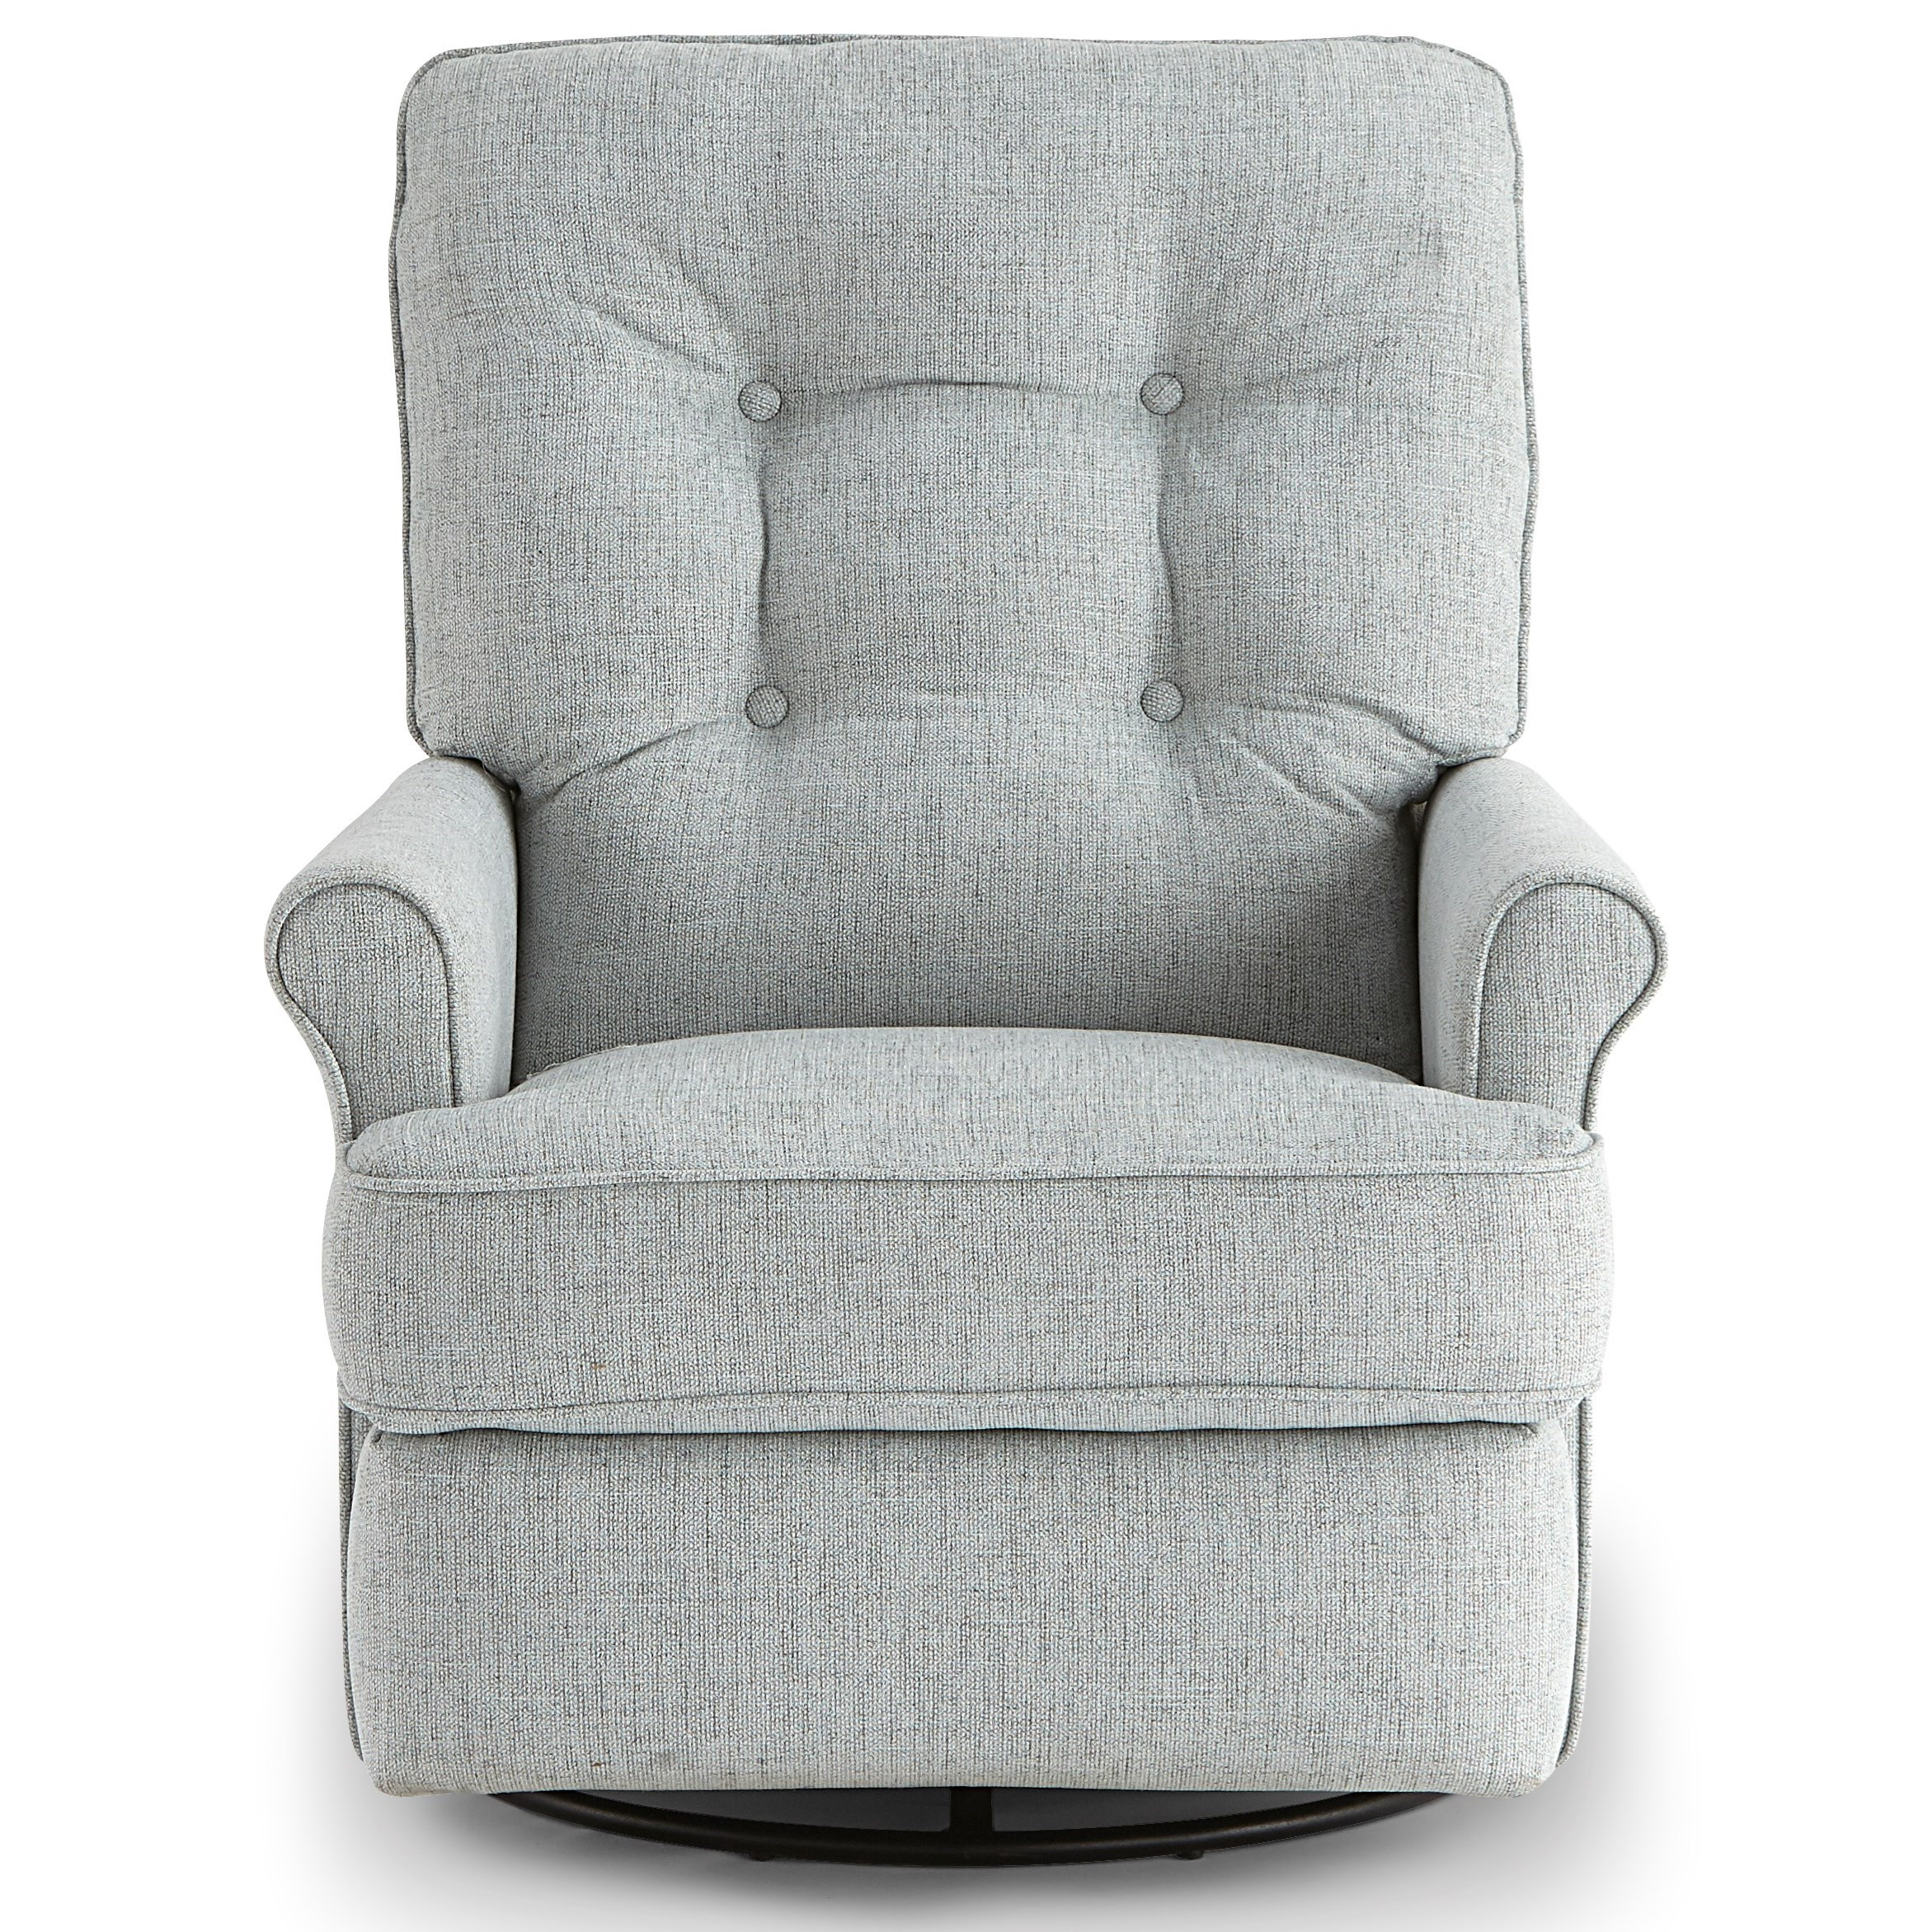 Carissa Power Swivel Glider Recliner by Best Home Furnishings at Walker's Furniture